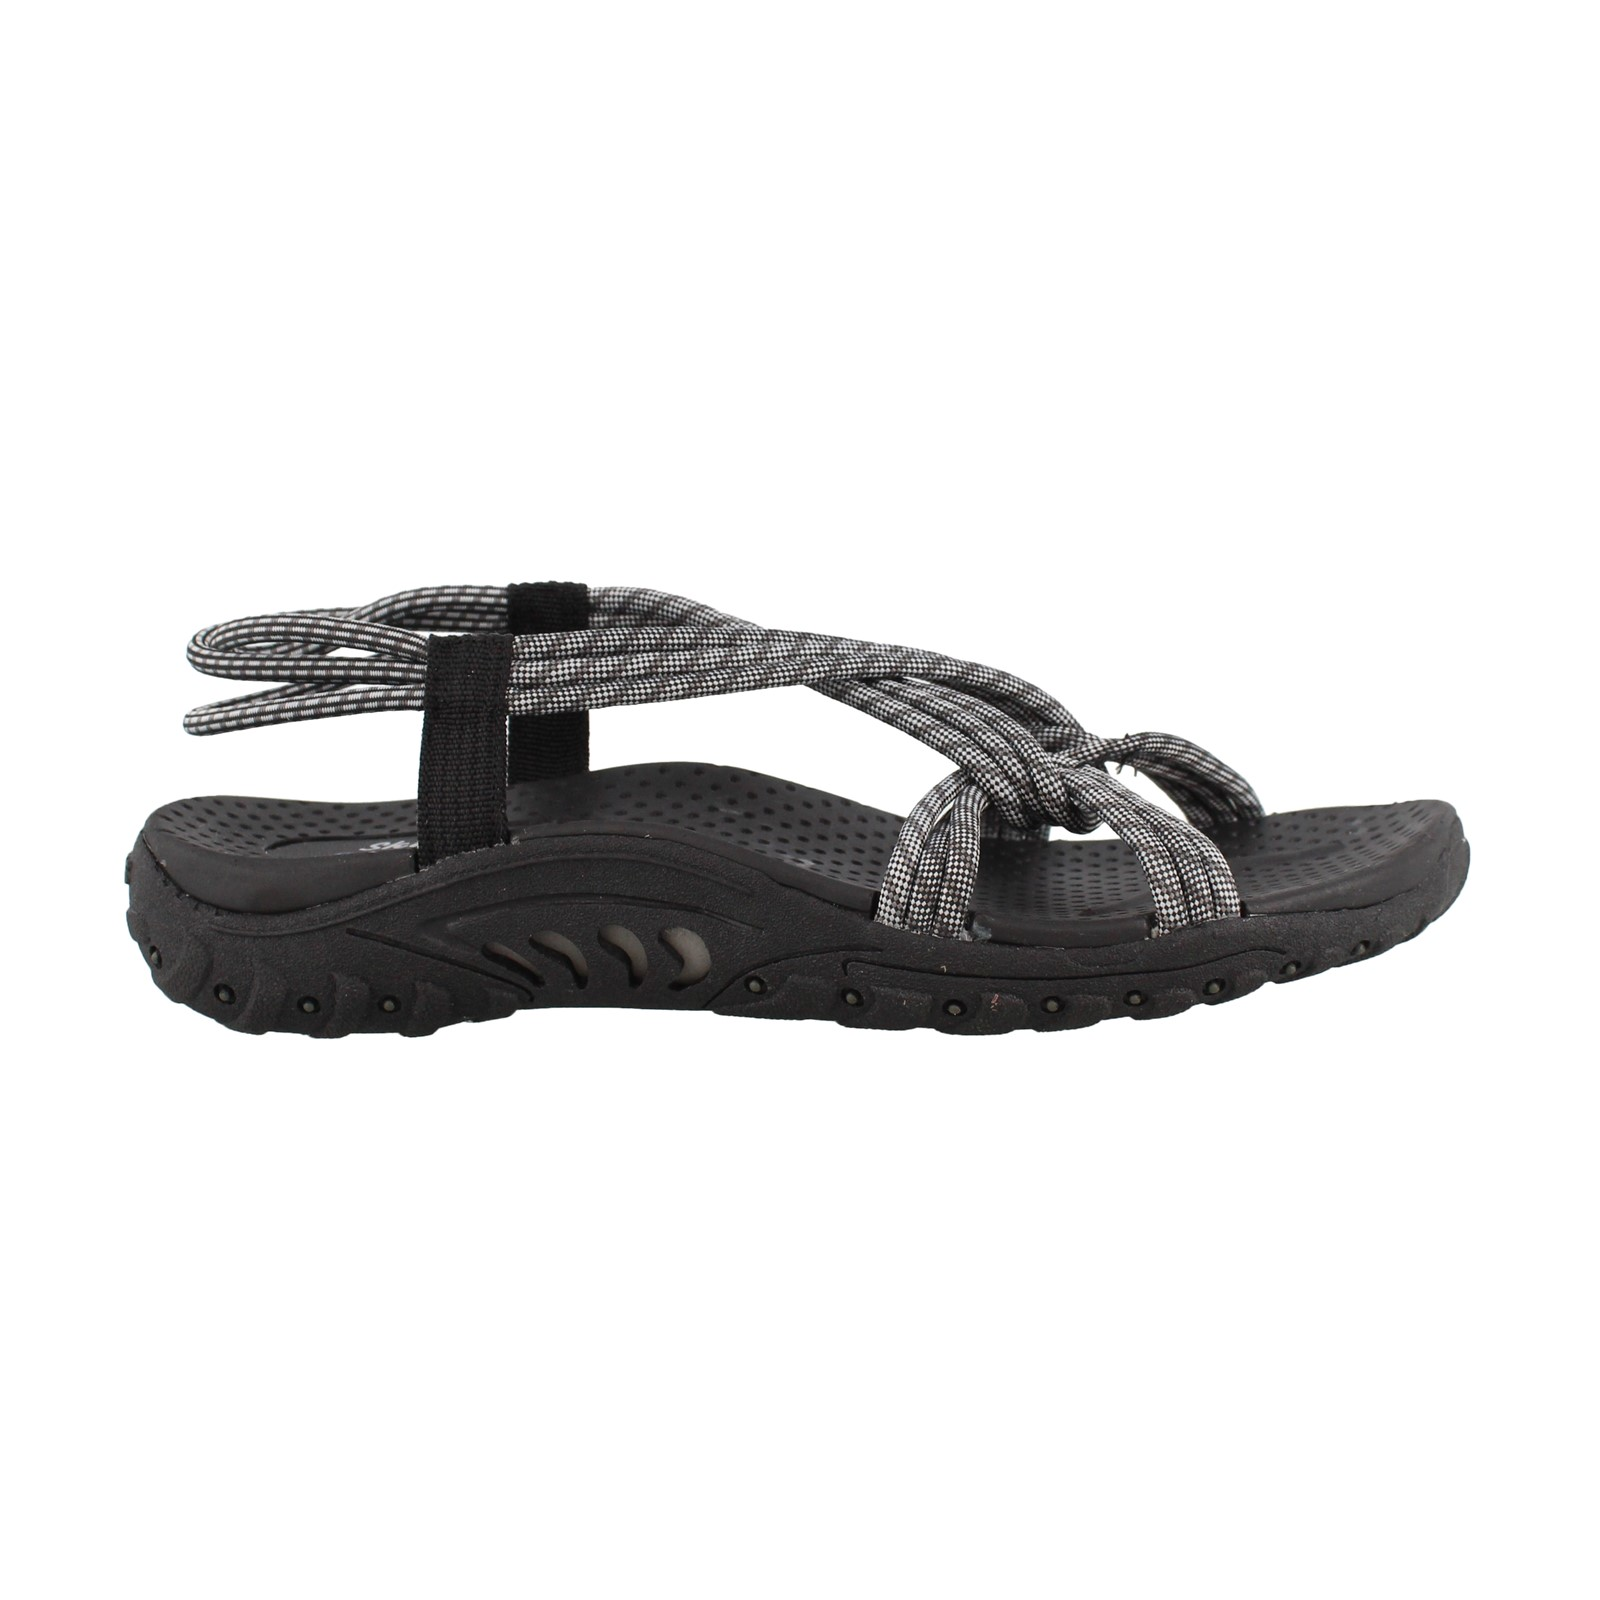 Women's Skechers, Reggae Trail Loop Sandals